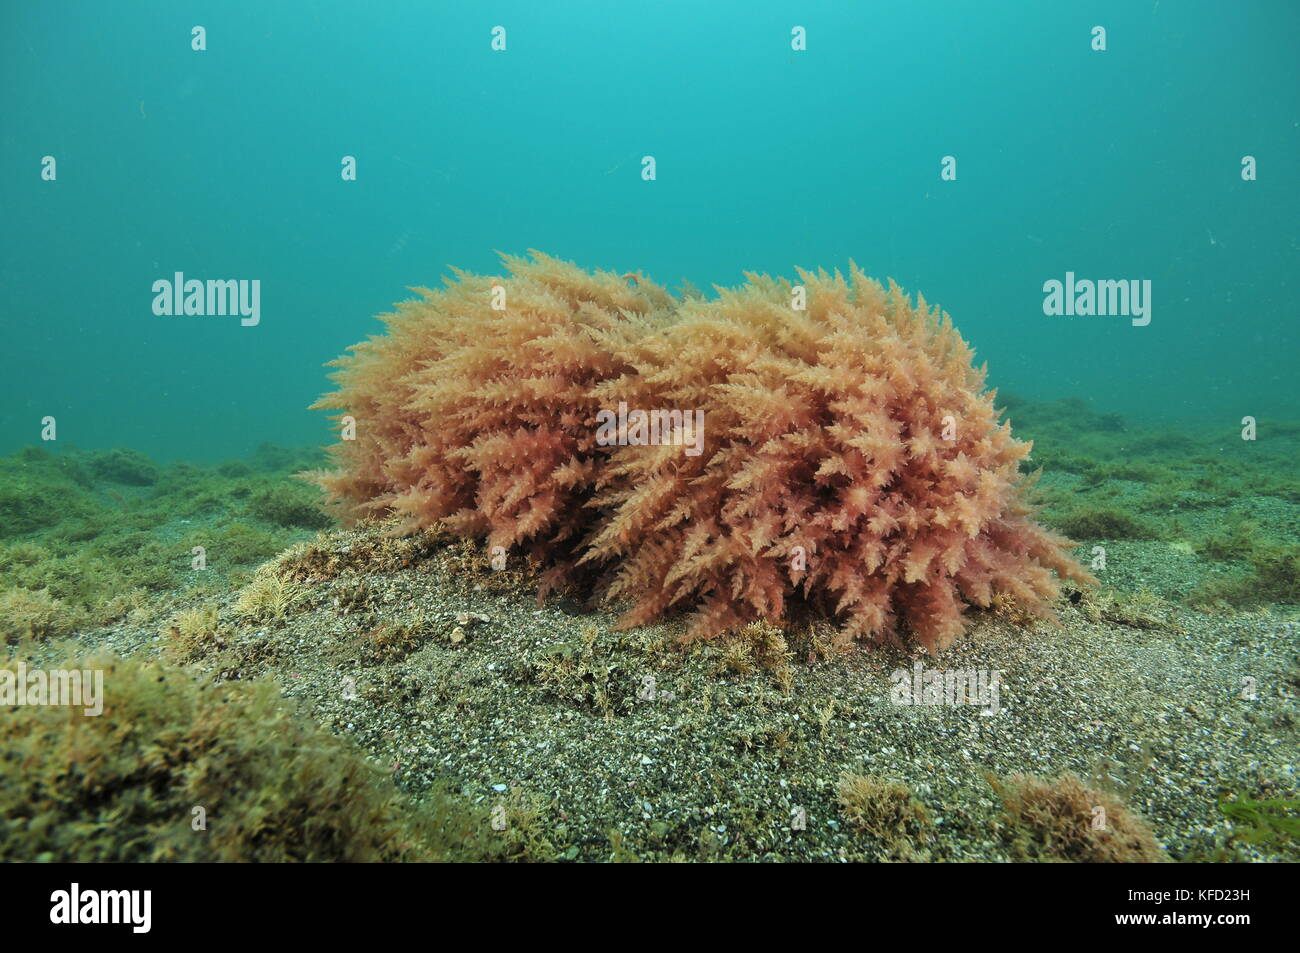 Two round bushes of red seaweed on rock protruding from flat ocean bottom of coarse sand. Stock Photo